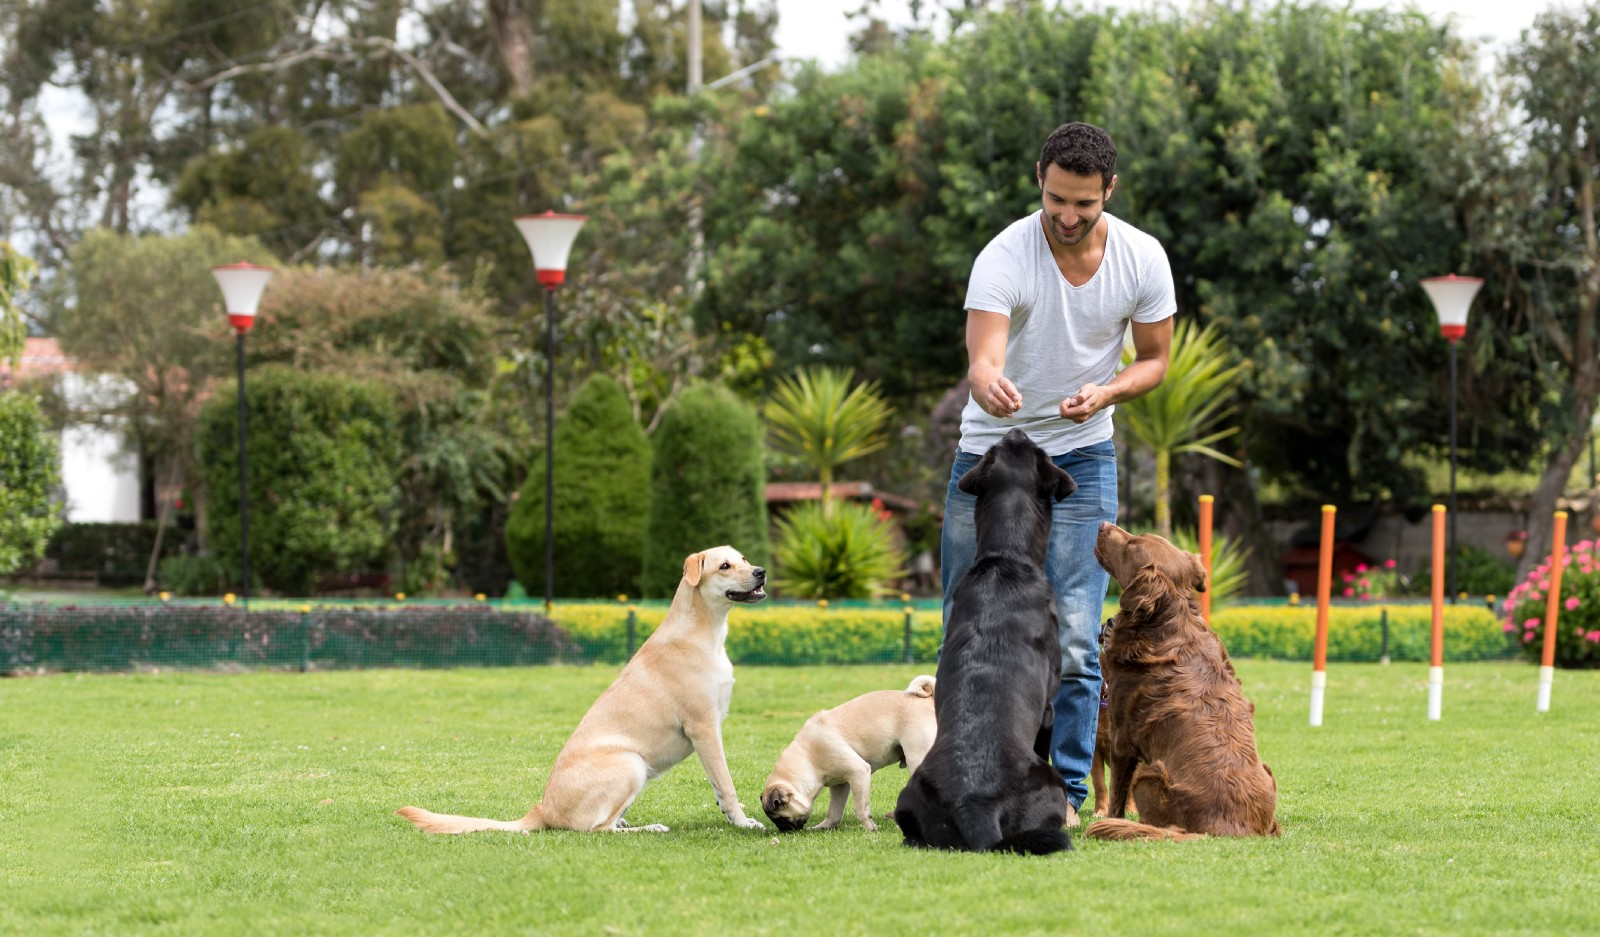 Our Top 10 Tips for Starting a Doggy Daycare or Kennel Business